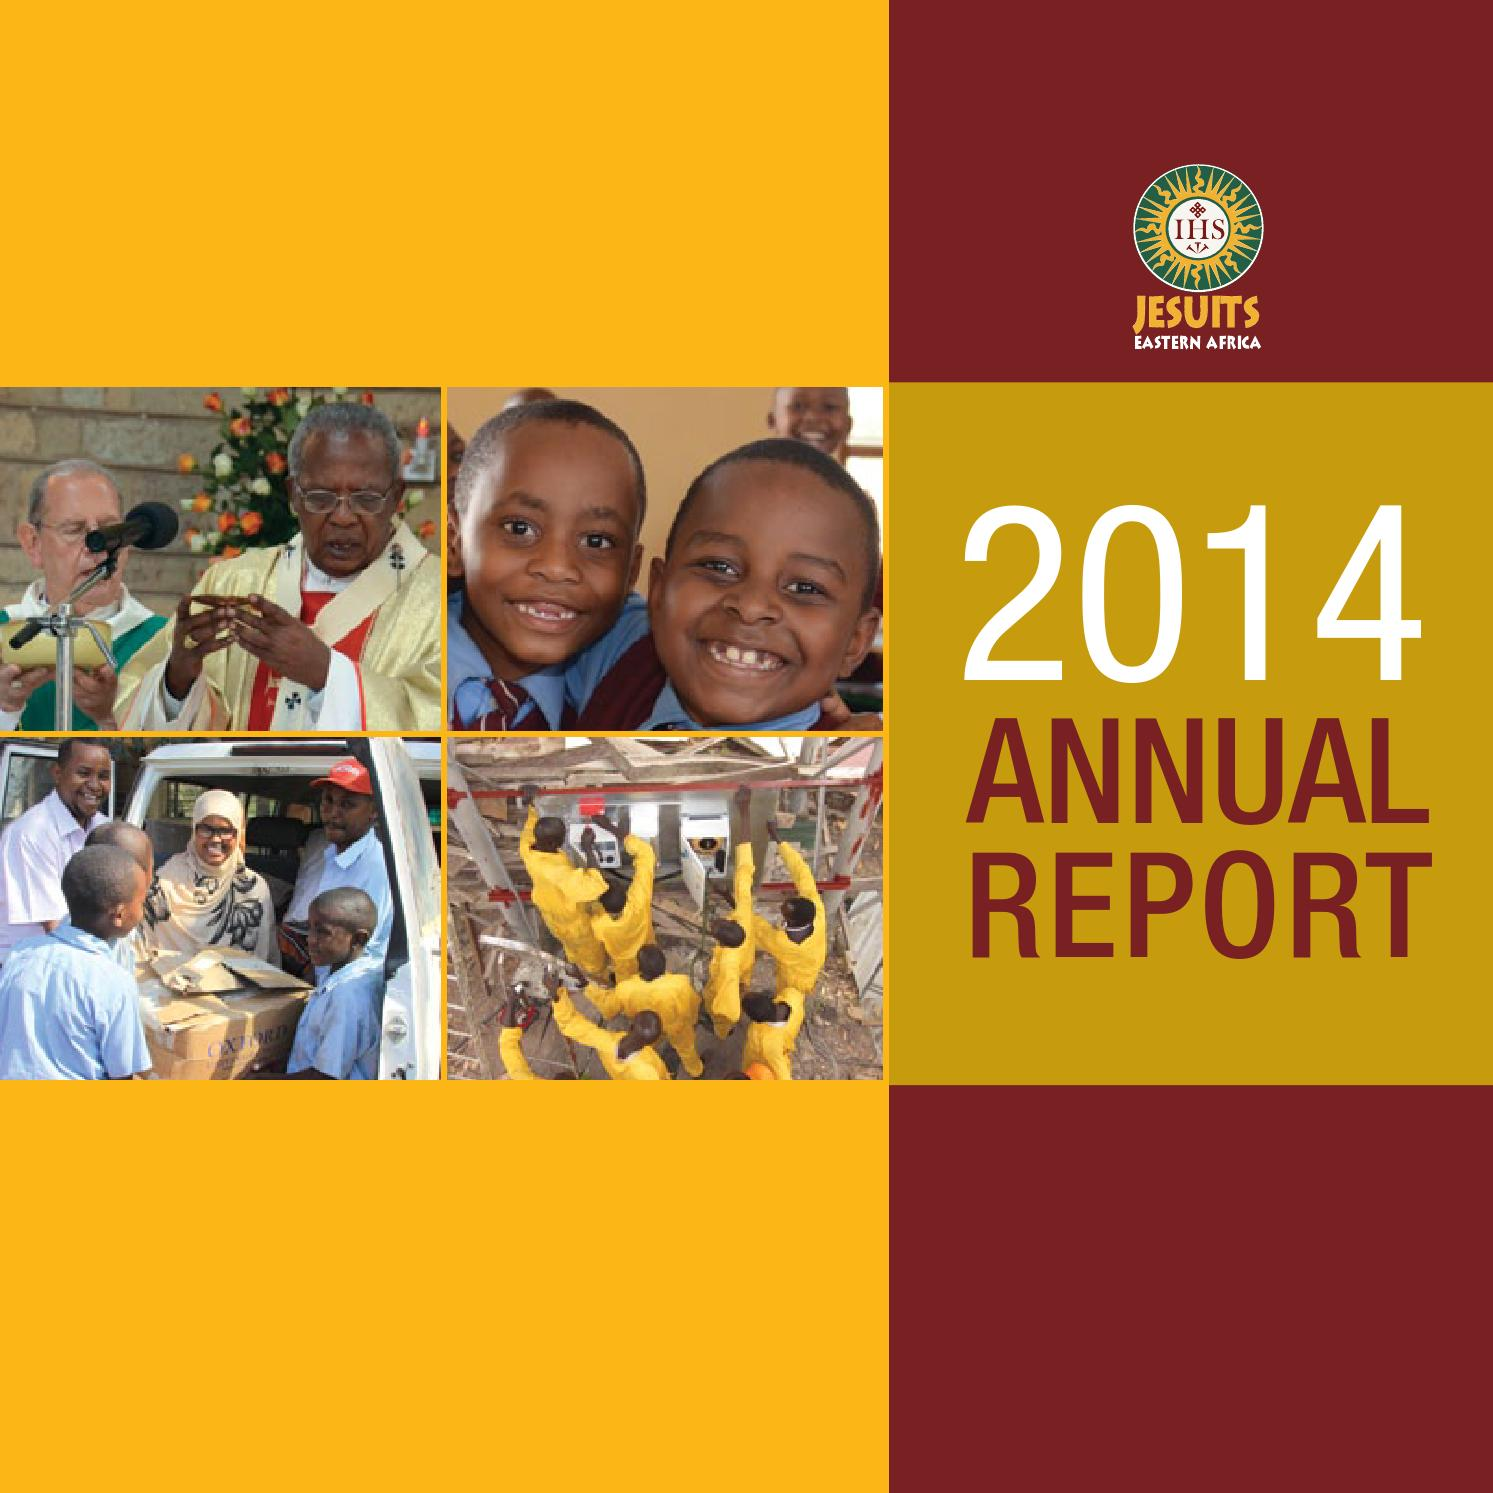 2014 Annual Report By Jesuits Eastern Africa Issuu